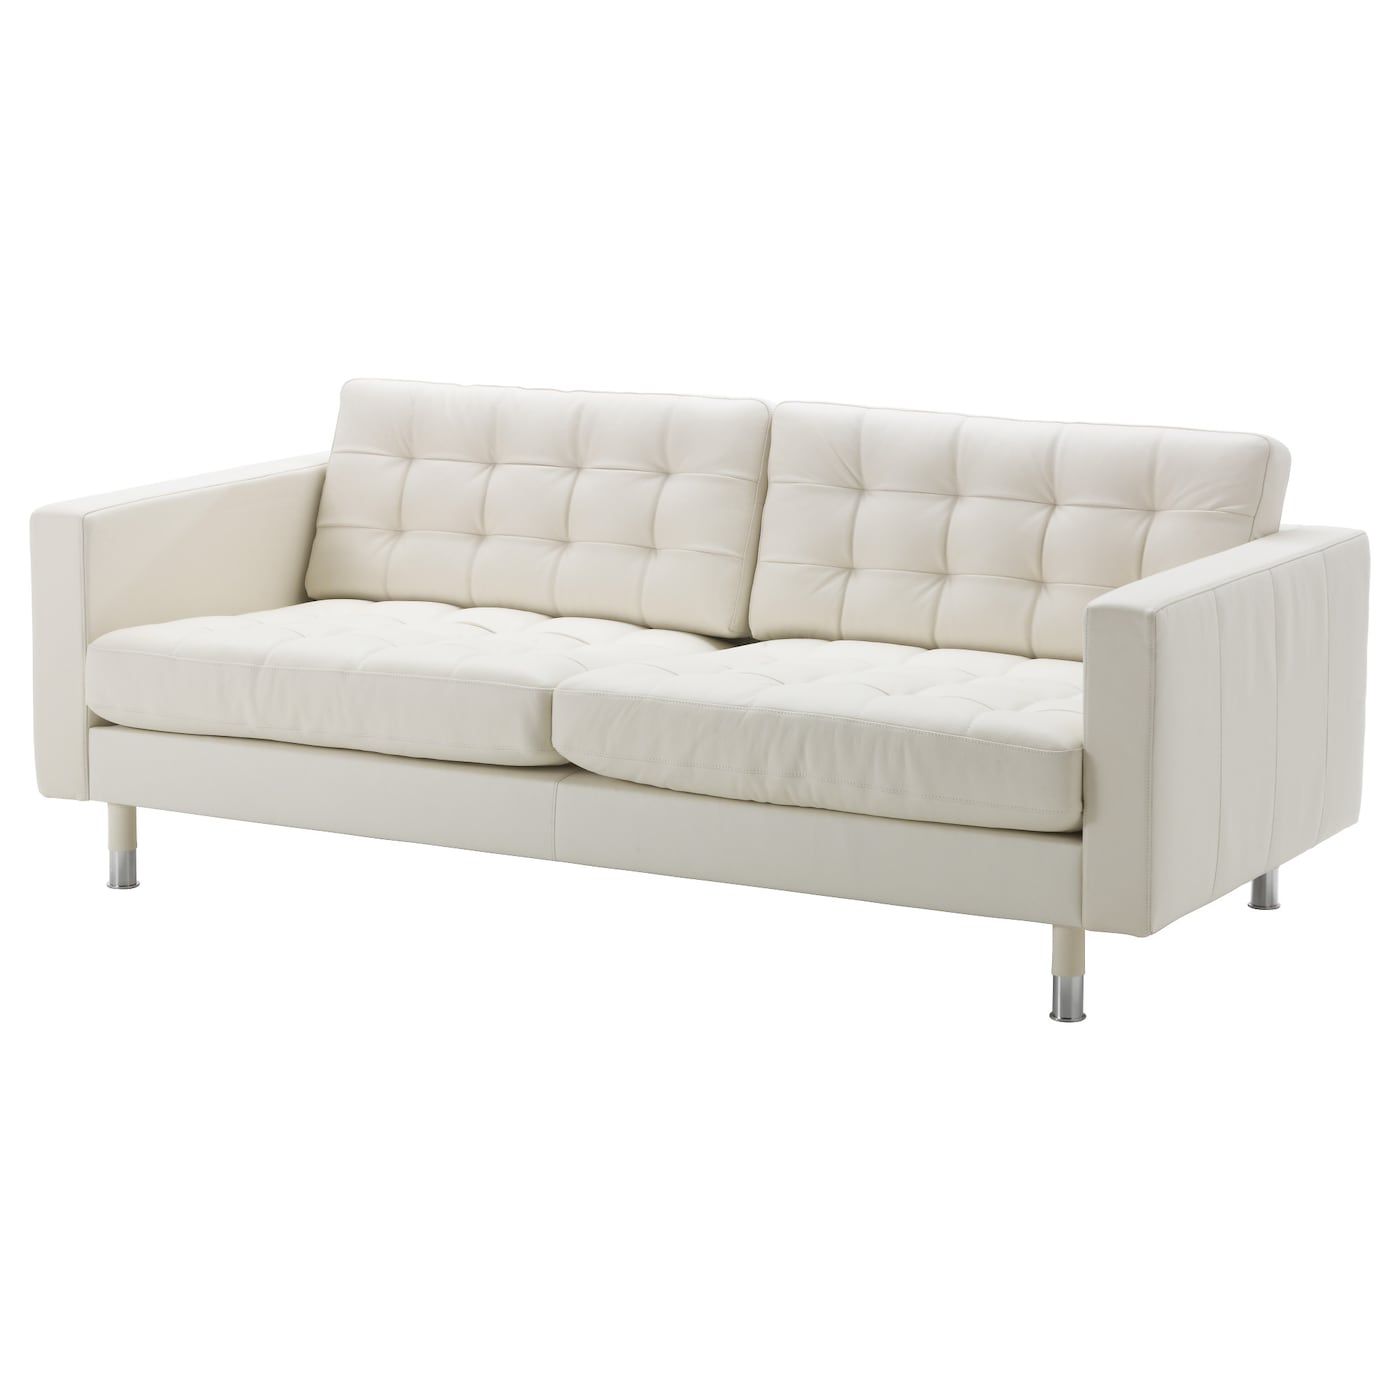 Ikea White Leather Couch Sofas: LANDSKRONA Three-seat Sofa Grann/bomstad White/metal